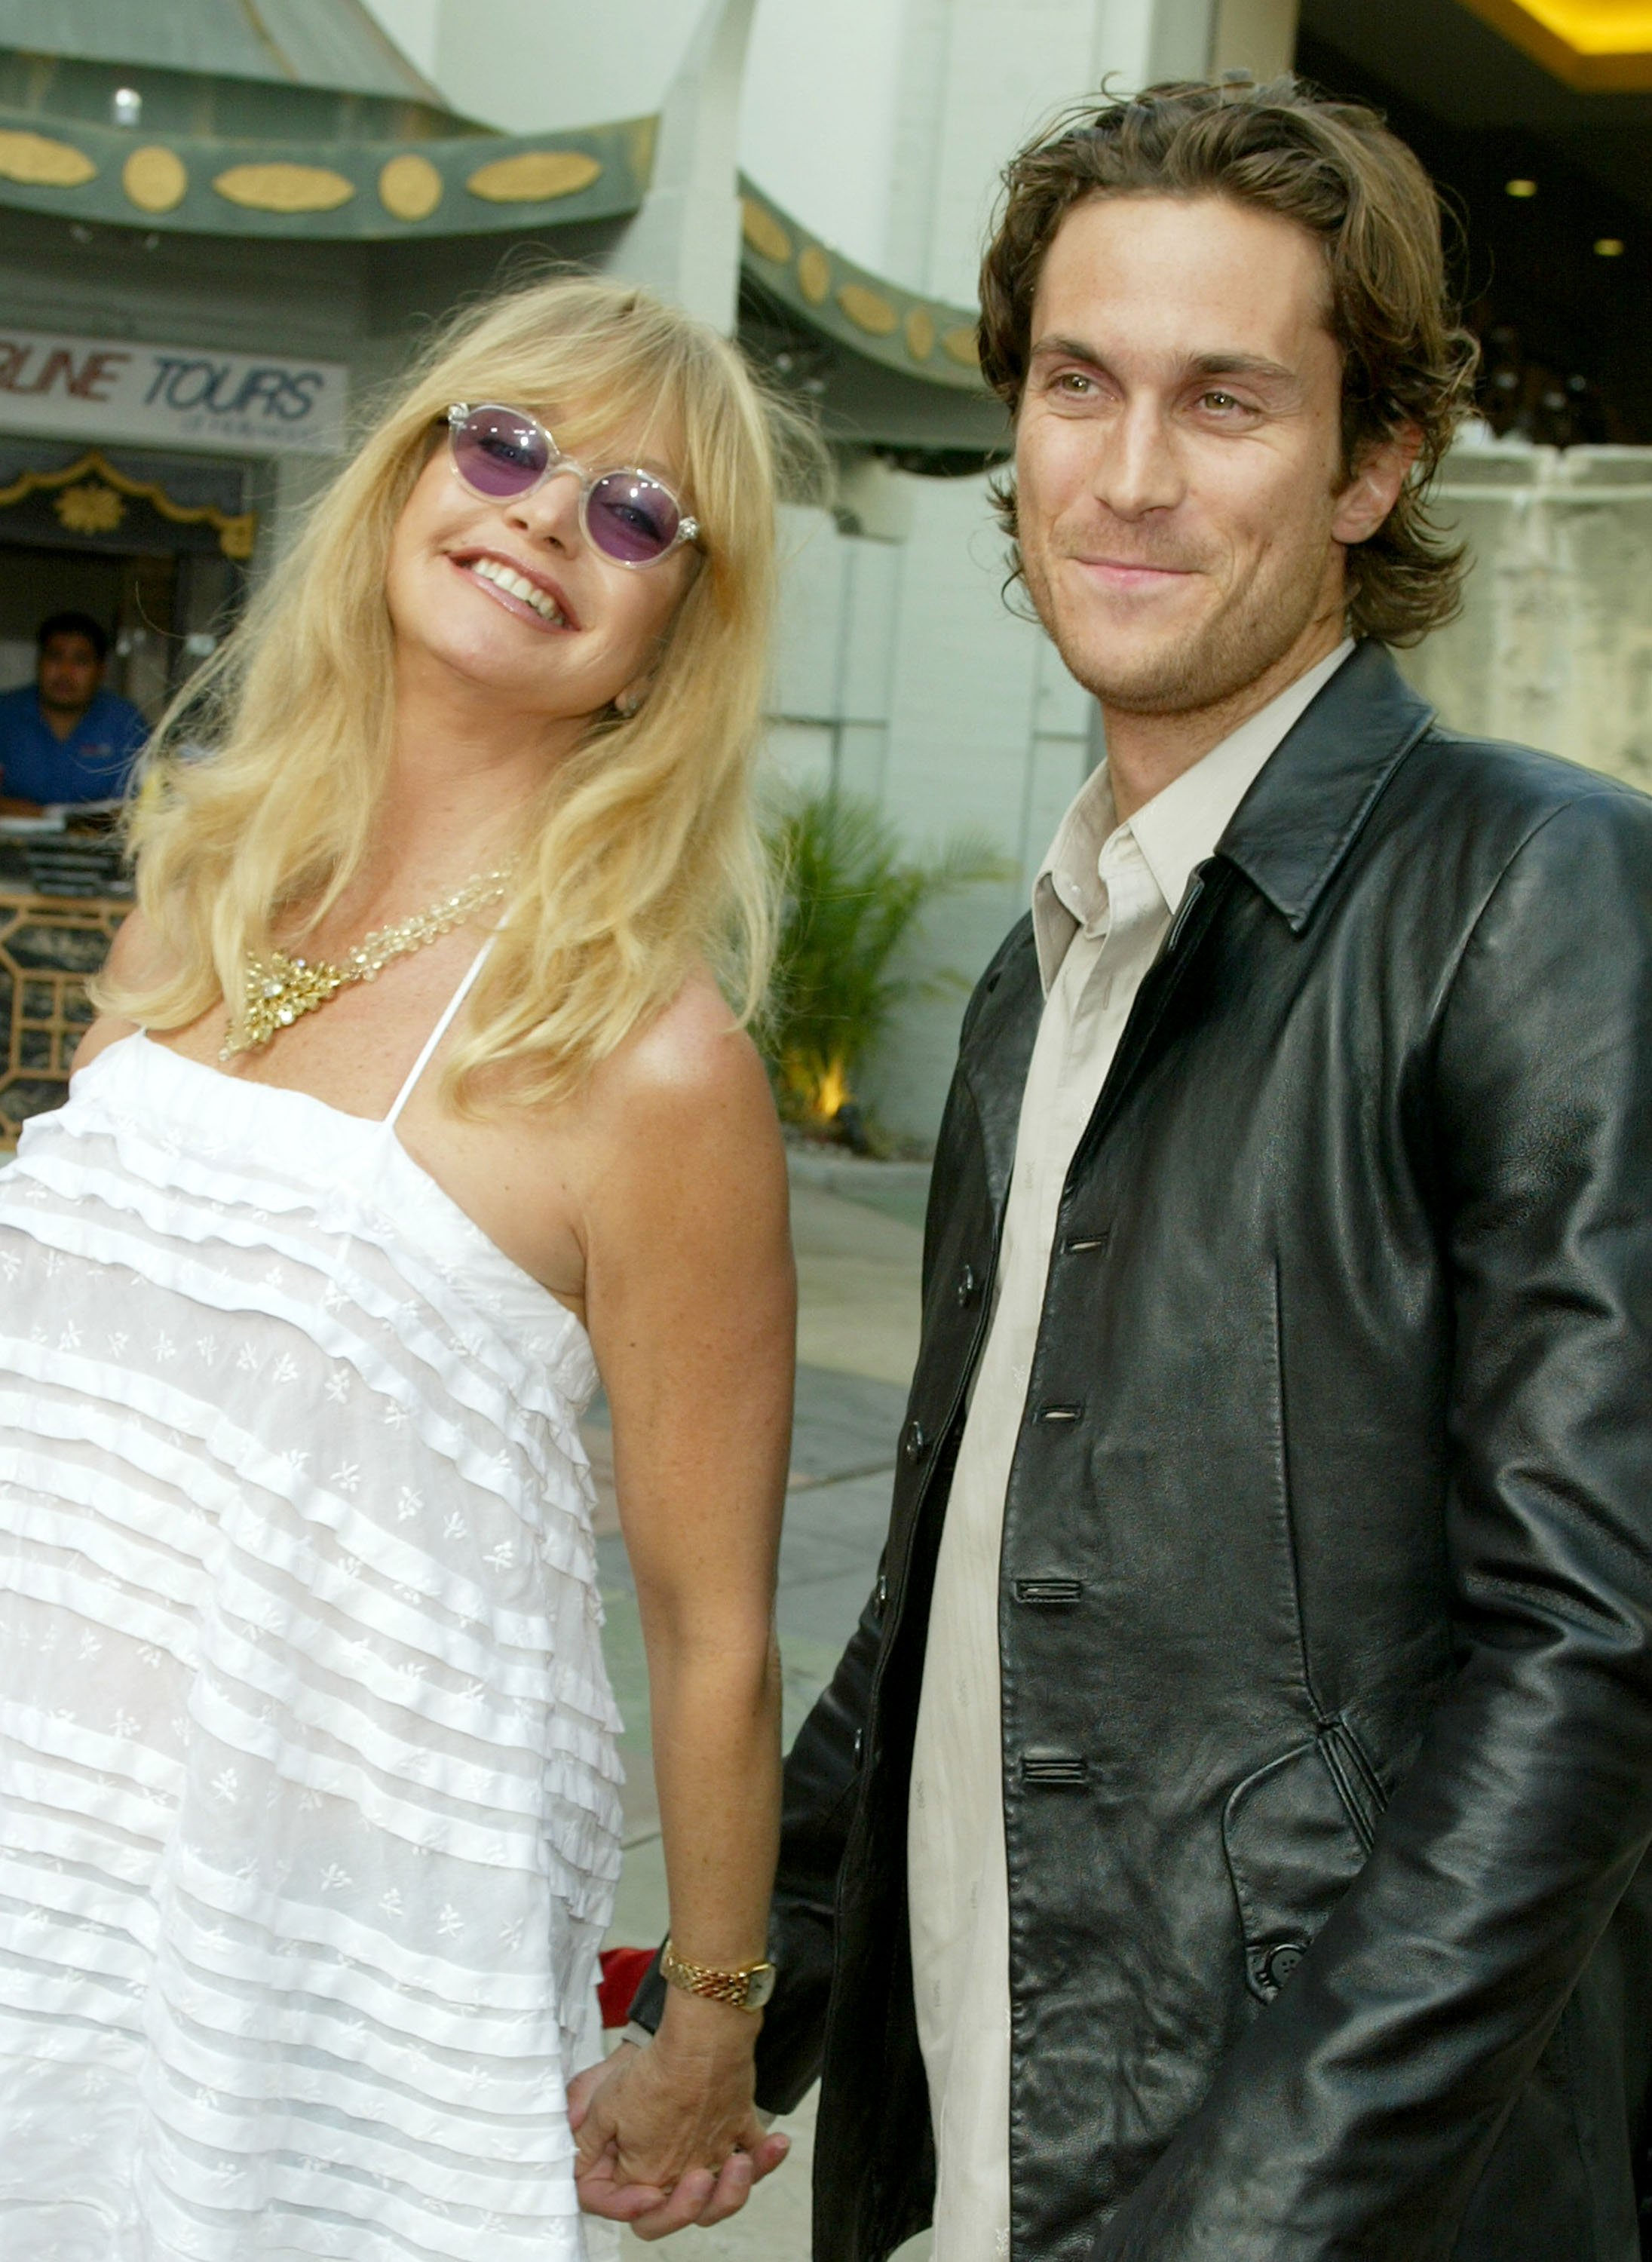 Goldie Hawn et son fils Oliver Hudson assistent à la première d'Alex & Emma au Grauman's Chinese Theatre le 16 juin 2003 à Hollywood, en Californie.  |  Source : Getty Images.